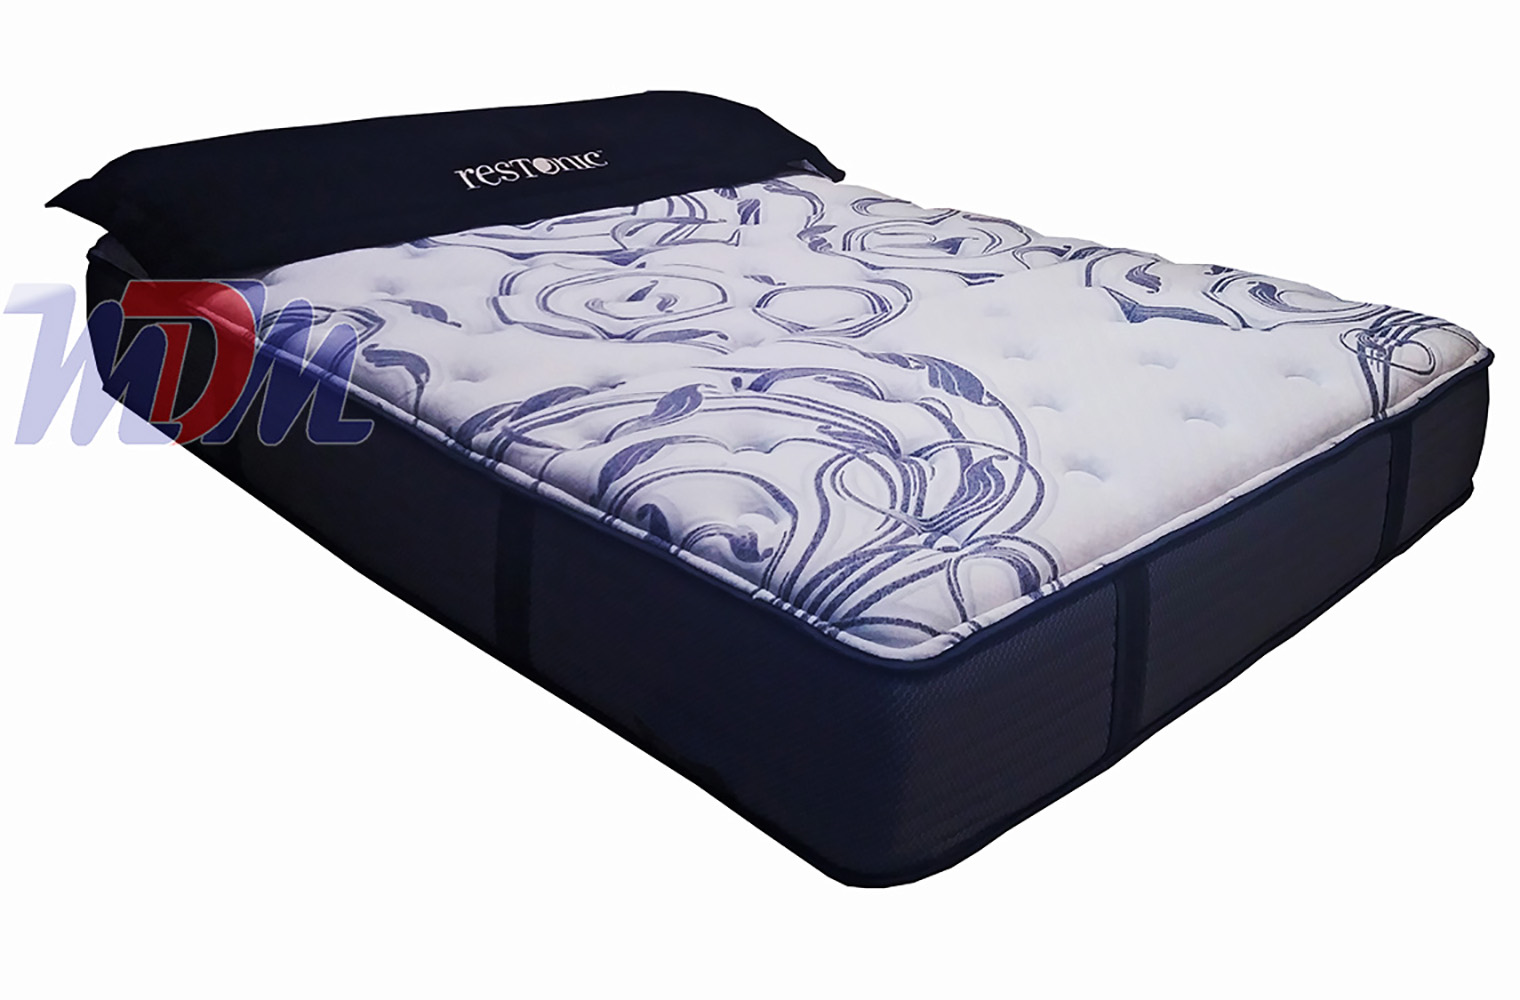 60 X 84 Great Lakes Plush A Comfort Care Mattress By